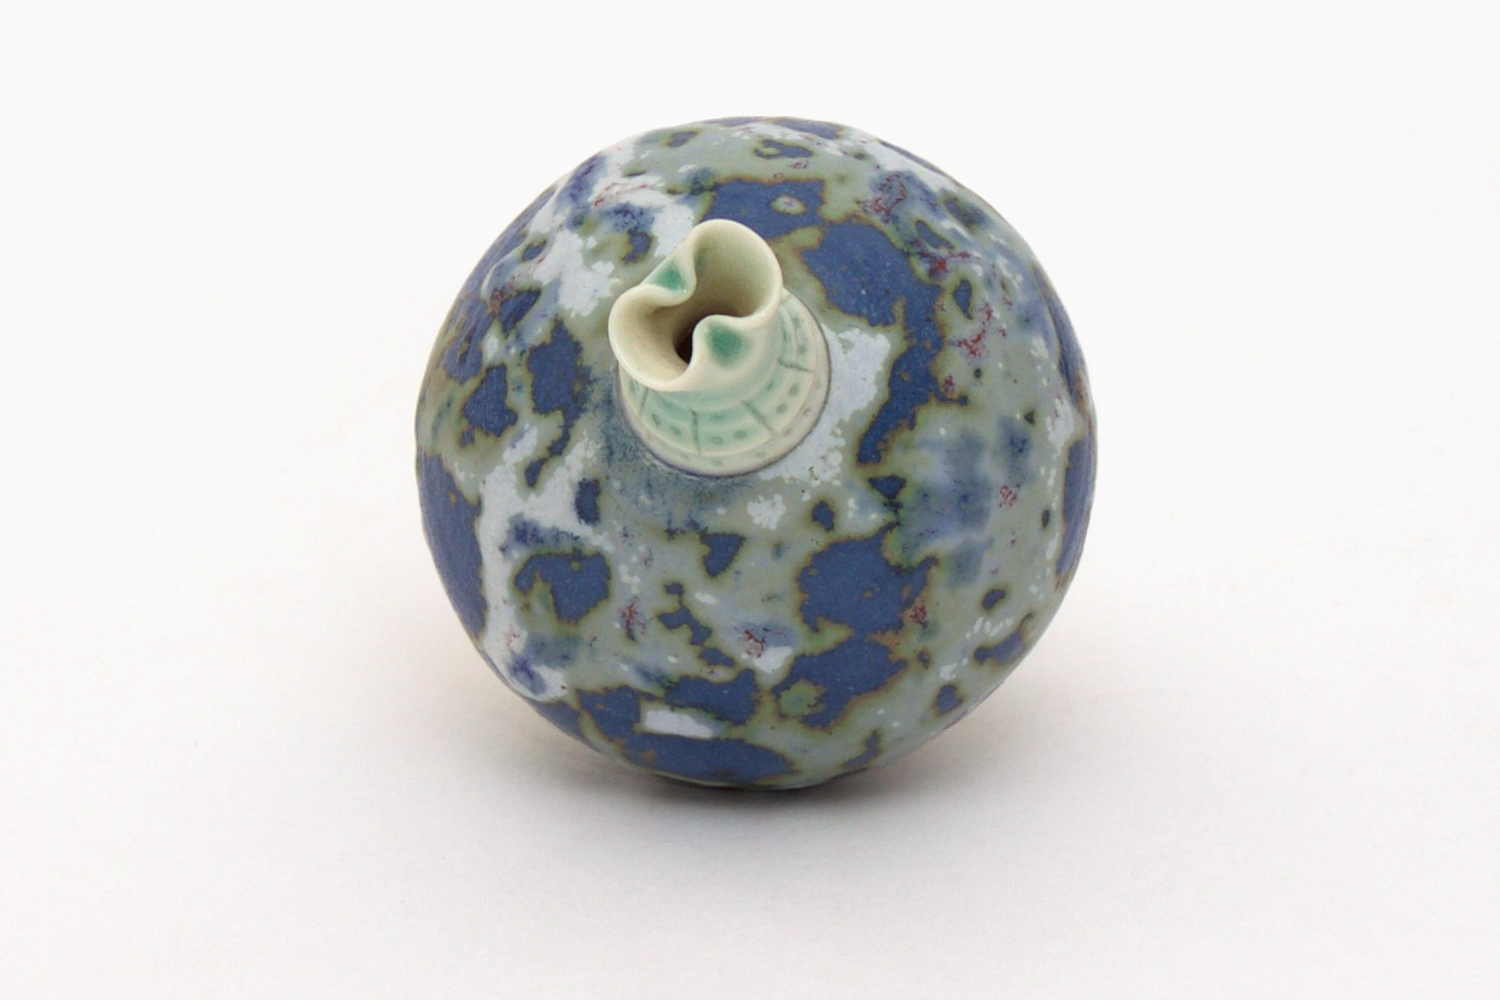 Geoffrey Swindell Miniature Ceramic Form 01